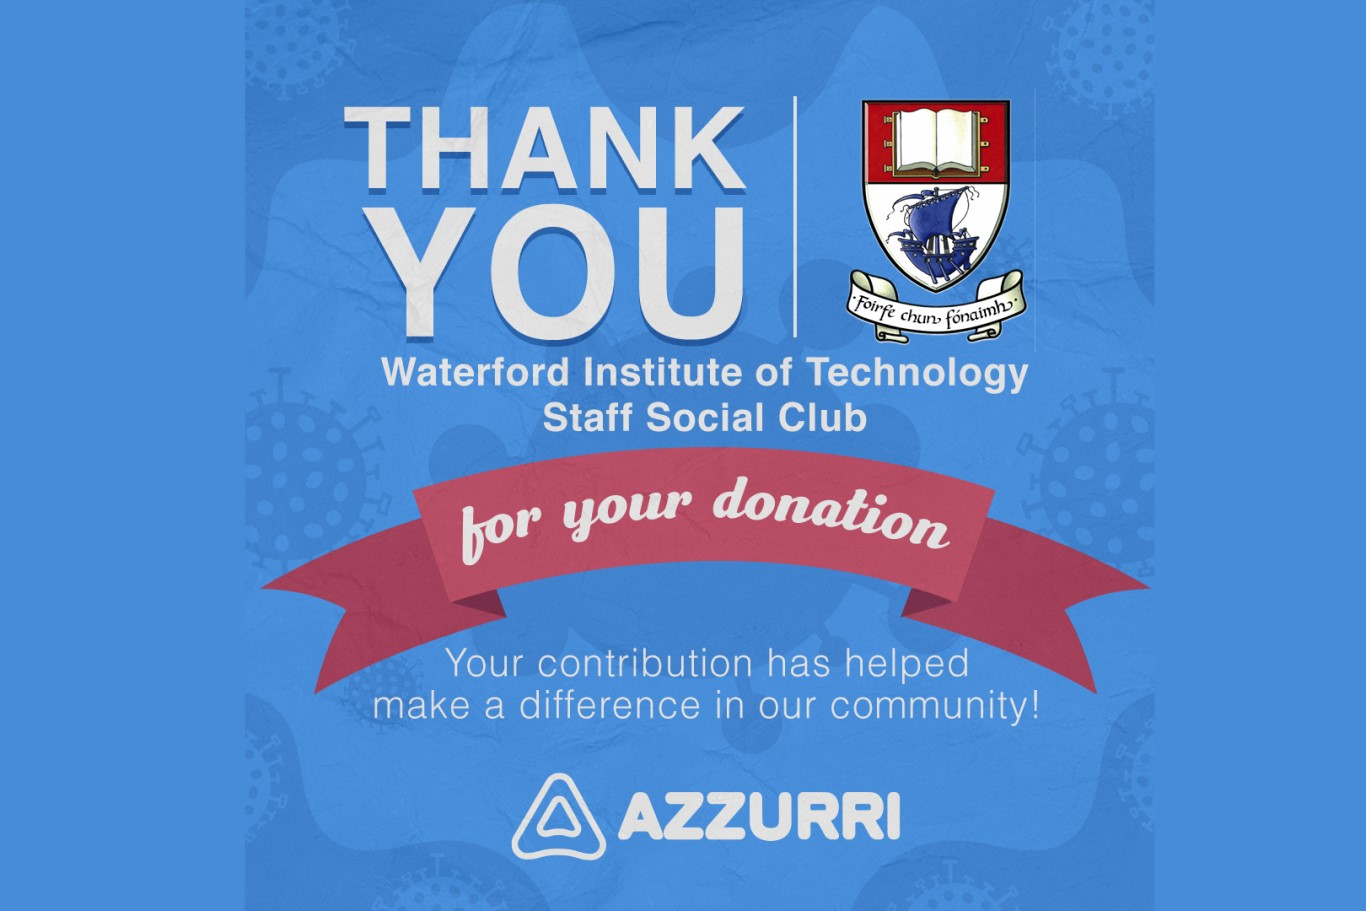 Azzurri welcomed the donation from the WIT Social Club